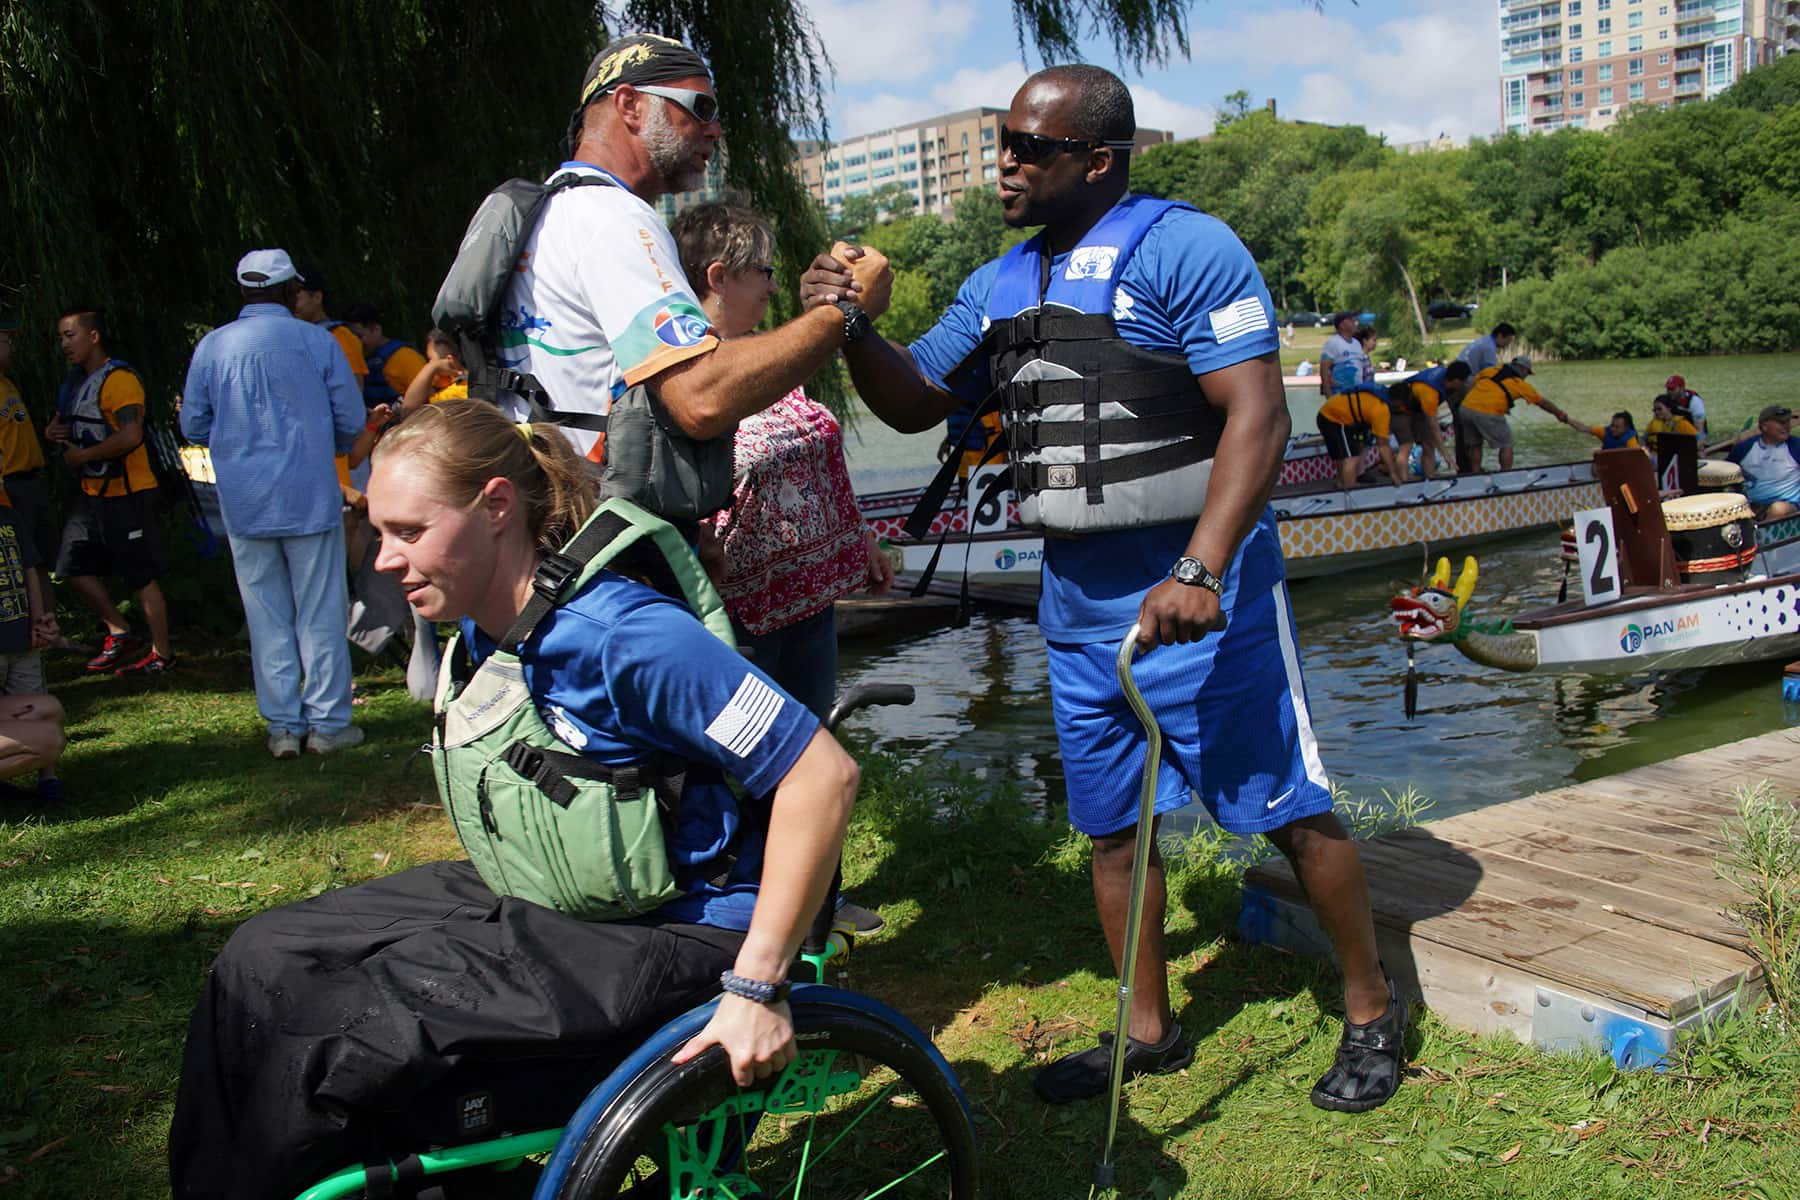 073016_DragonBoatRace_0590